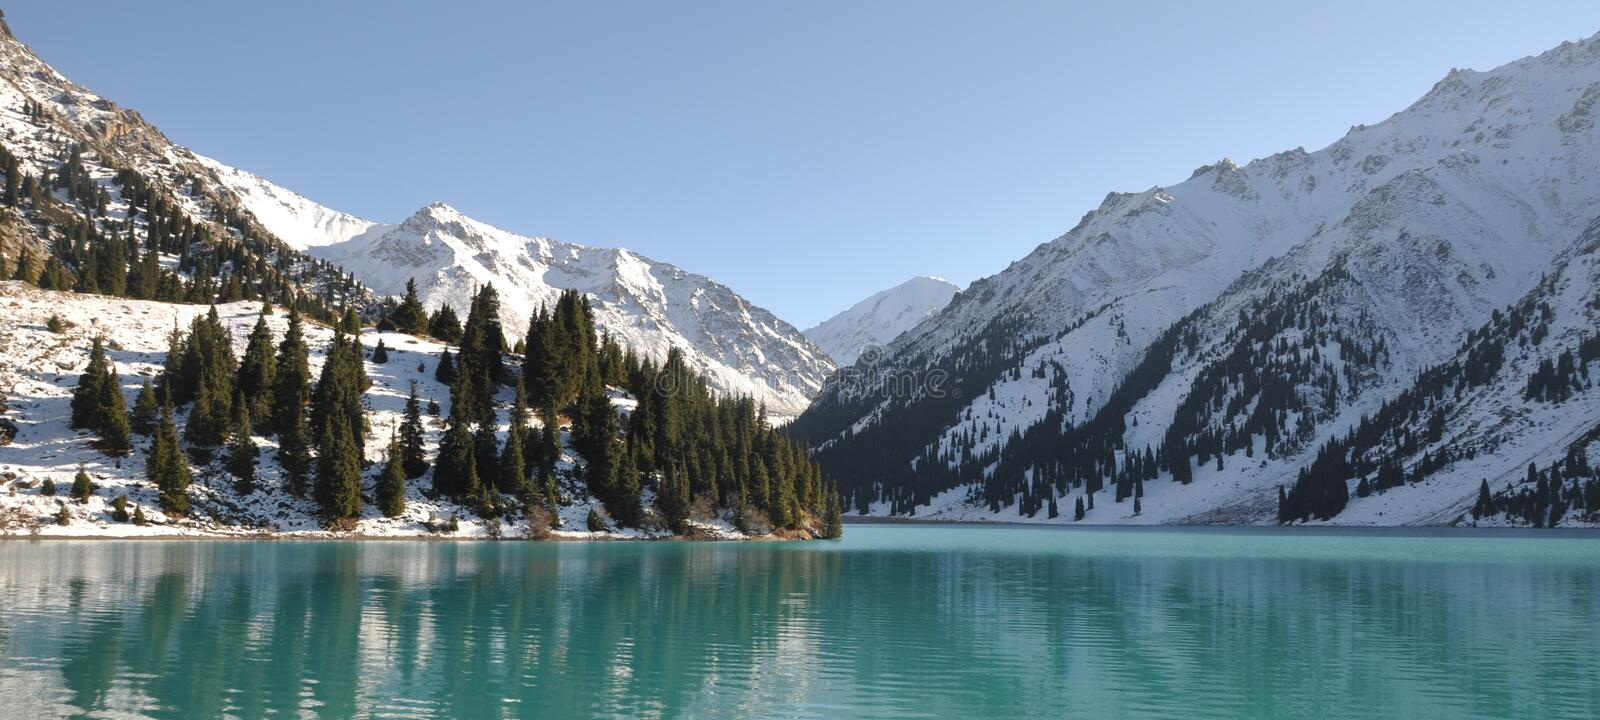 Scenics grande do lago Almaty foto de stock royalty free